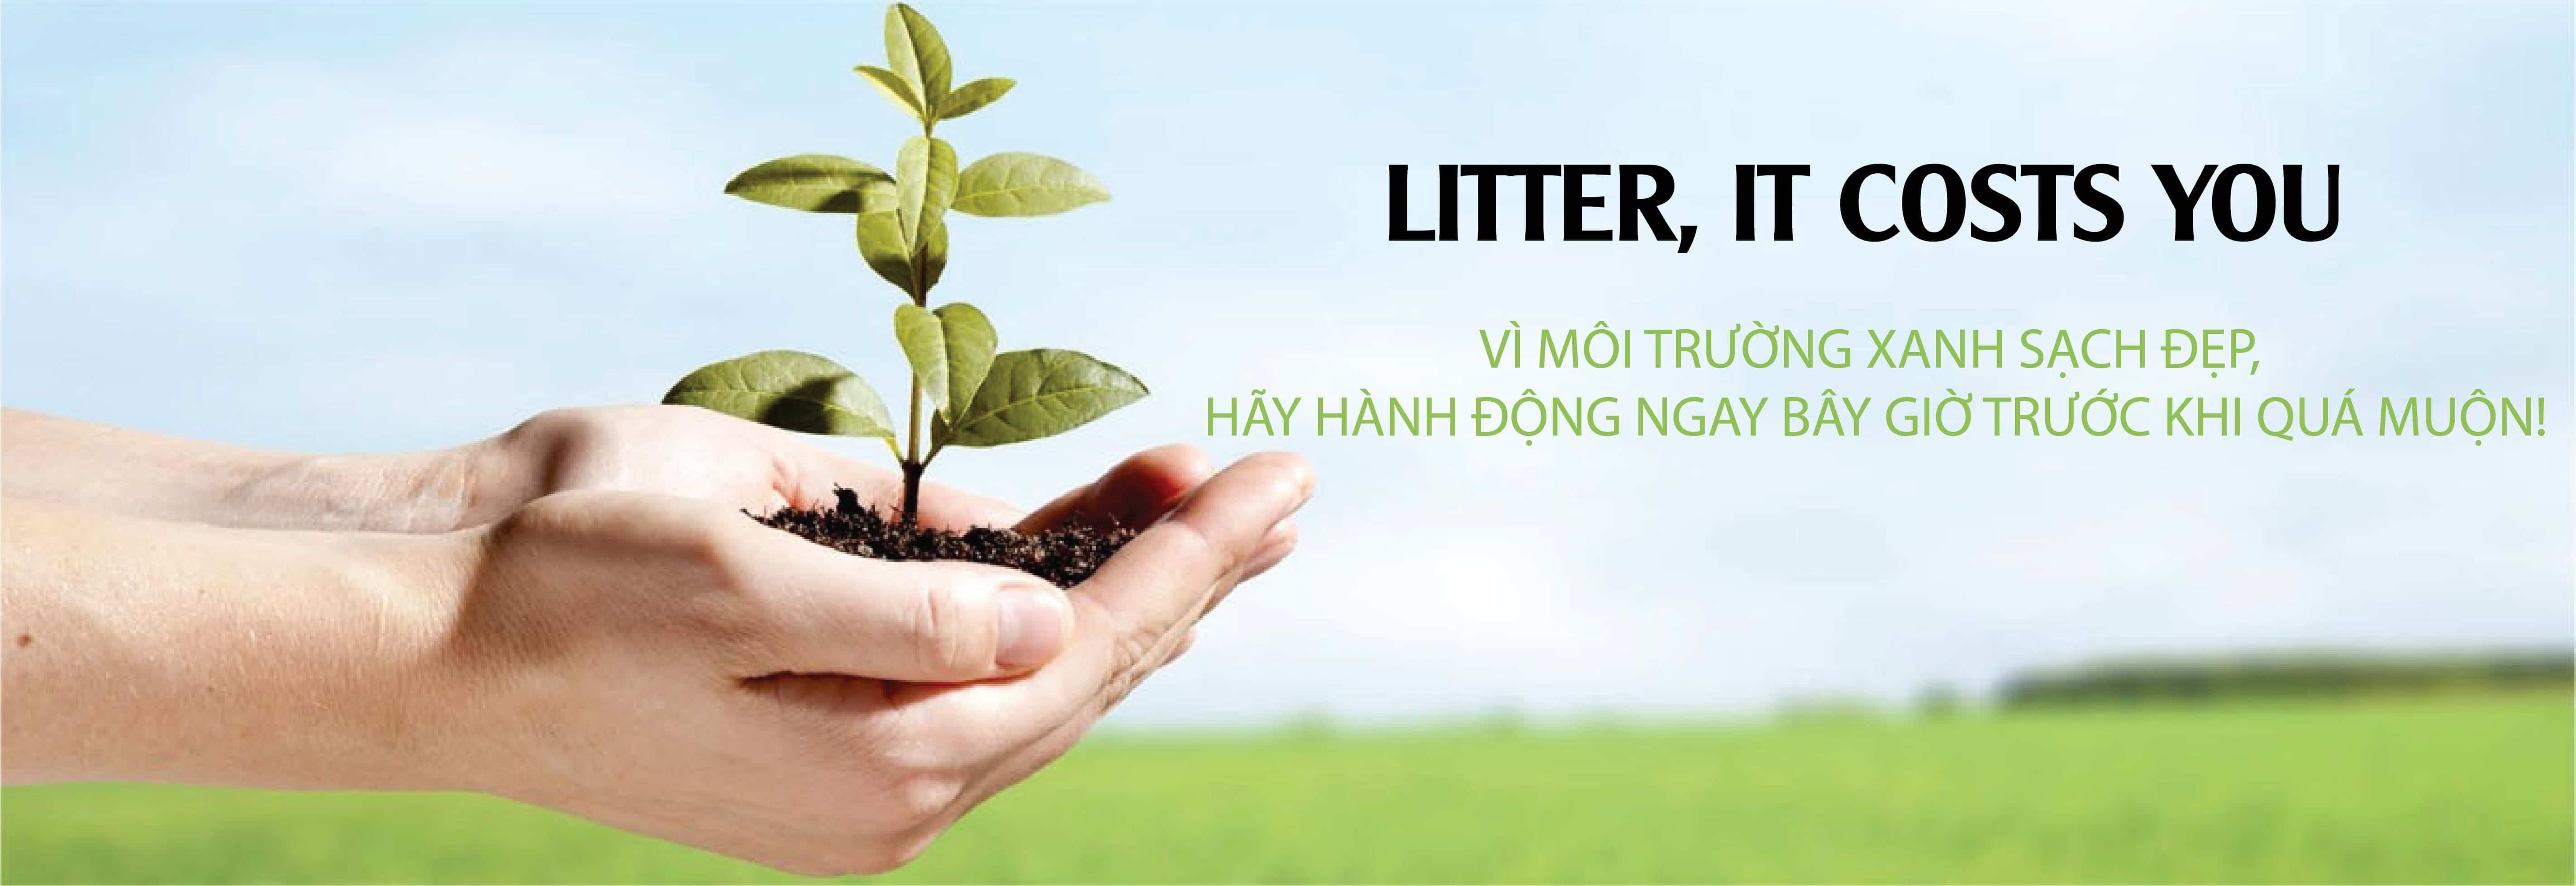 Litter, it costs you